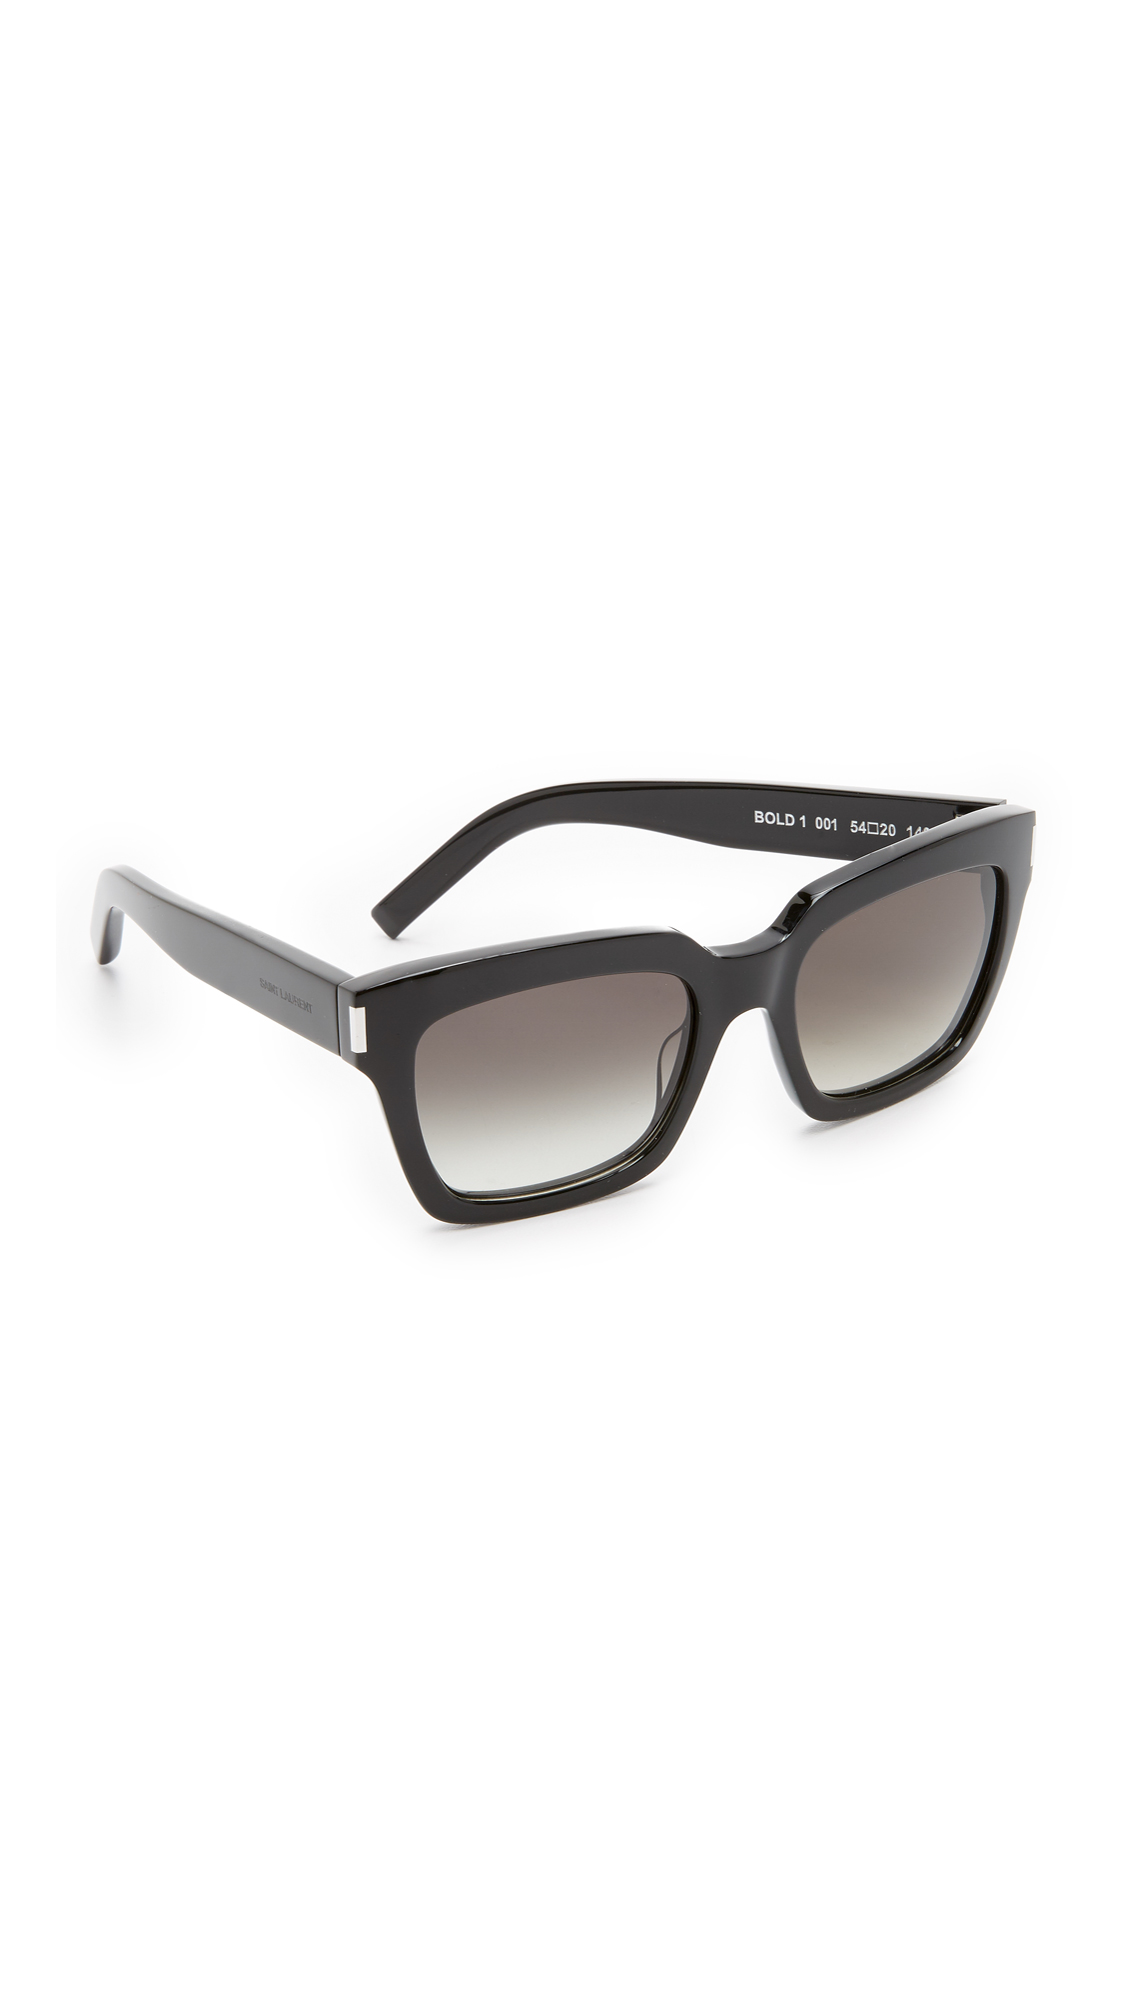 생 로랑 선글라스 Saint Laurent Bold 1 Sunglasses